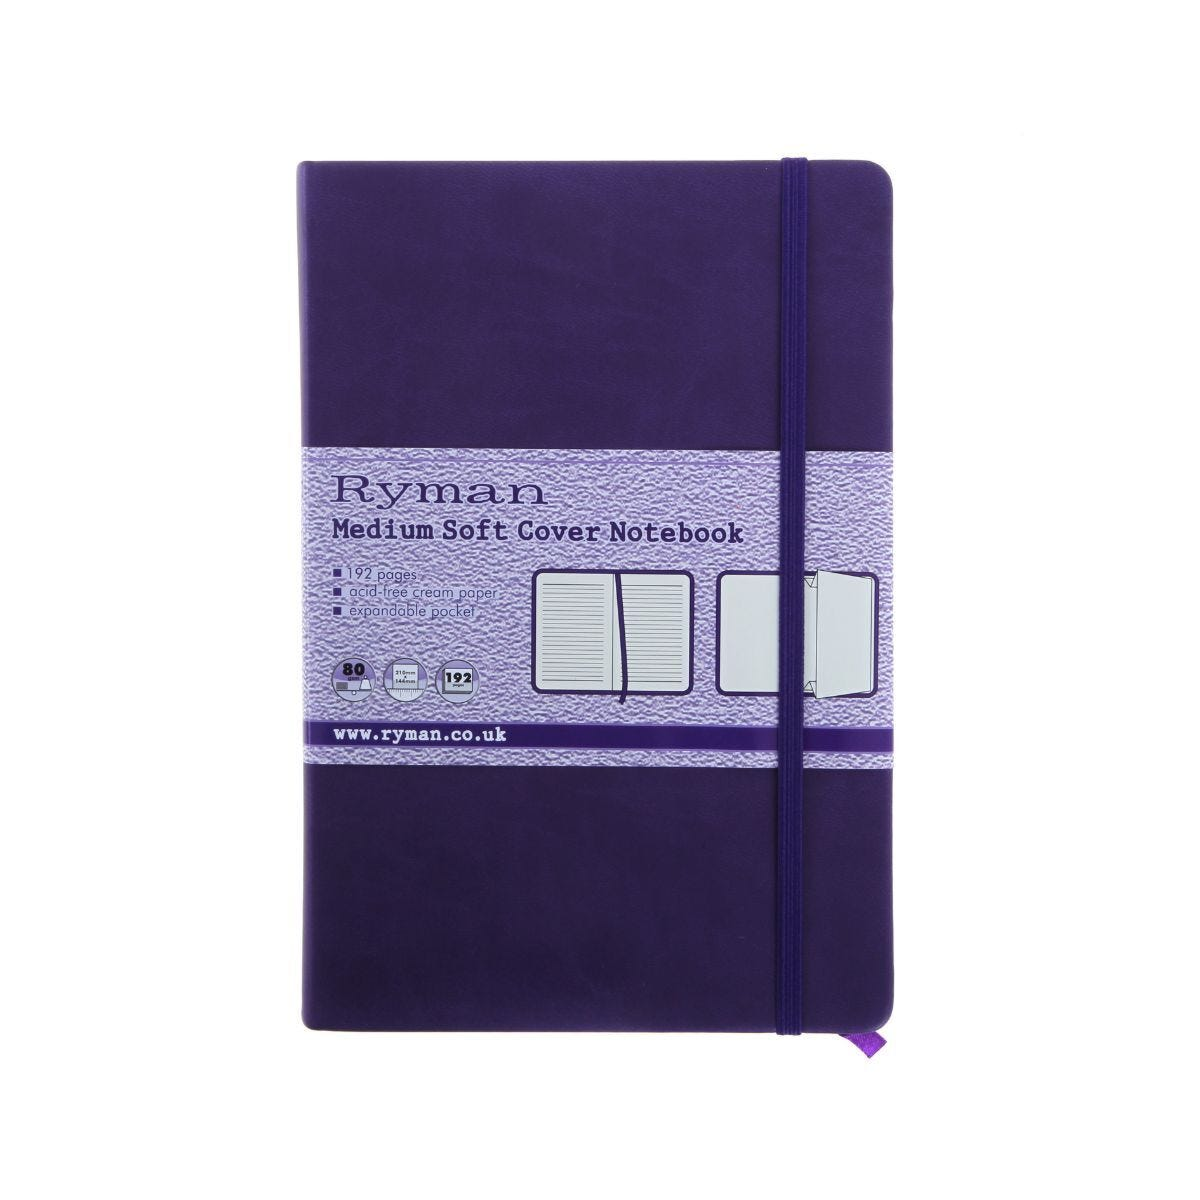 Ryman Soft Cover Medium Notebook Ruled 192 Pages Purple